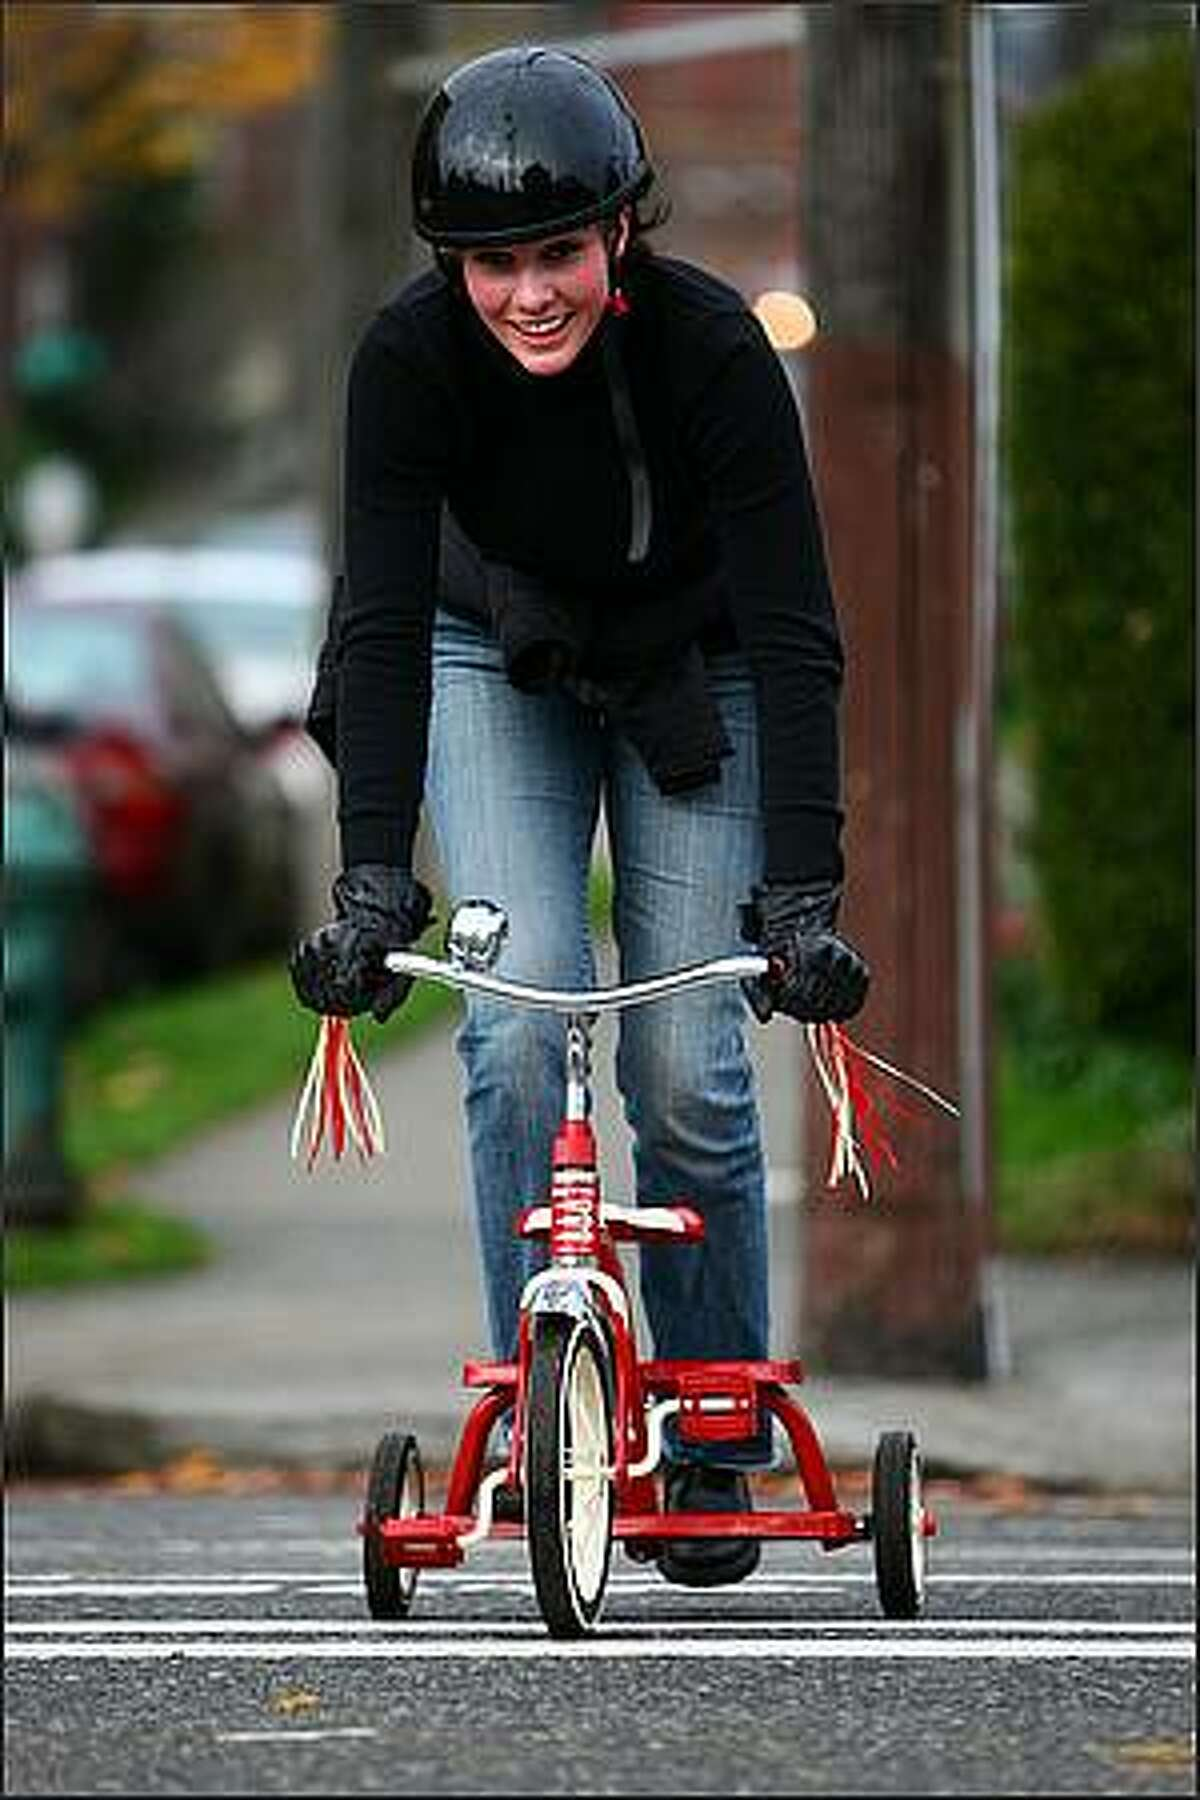 Tricycle rider Shaney Clemmons approaches the finish line, the door of the Streamline Tavern in Lower Queen Anne, during the Queen Anne Tricycle Race on Sunday.